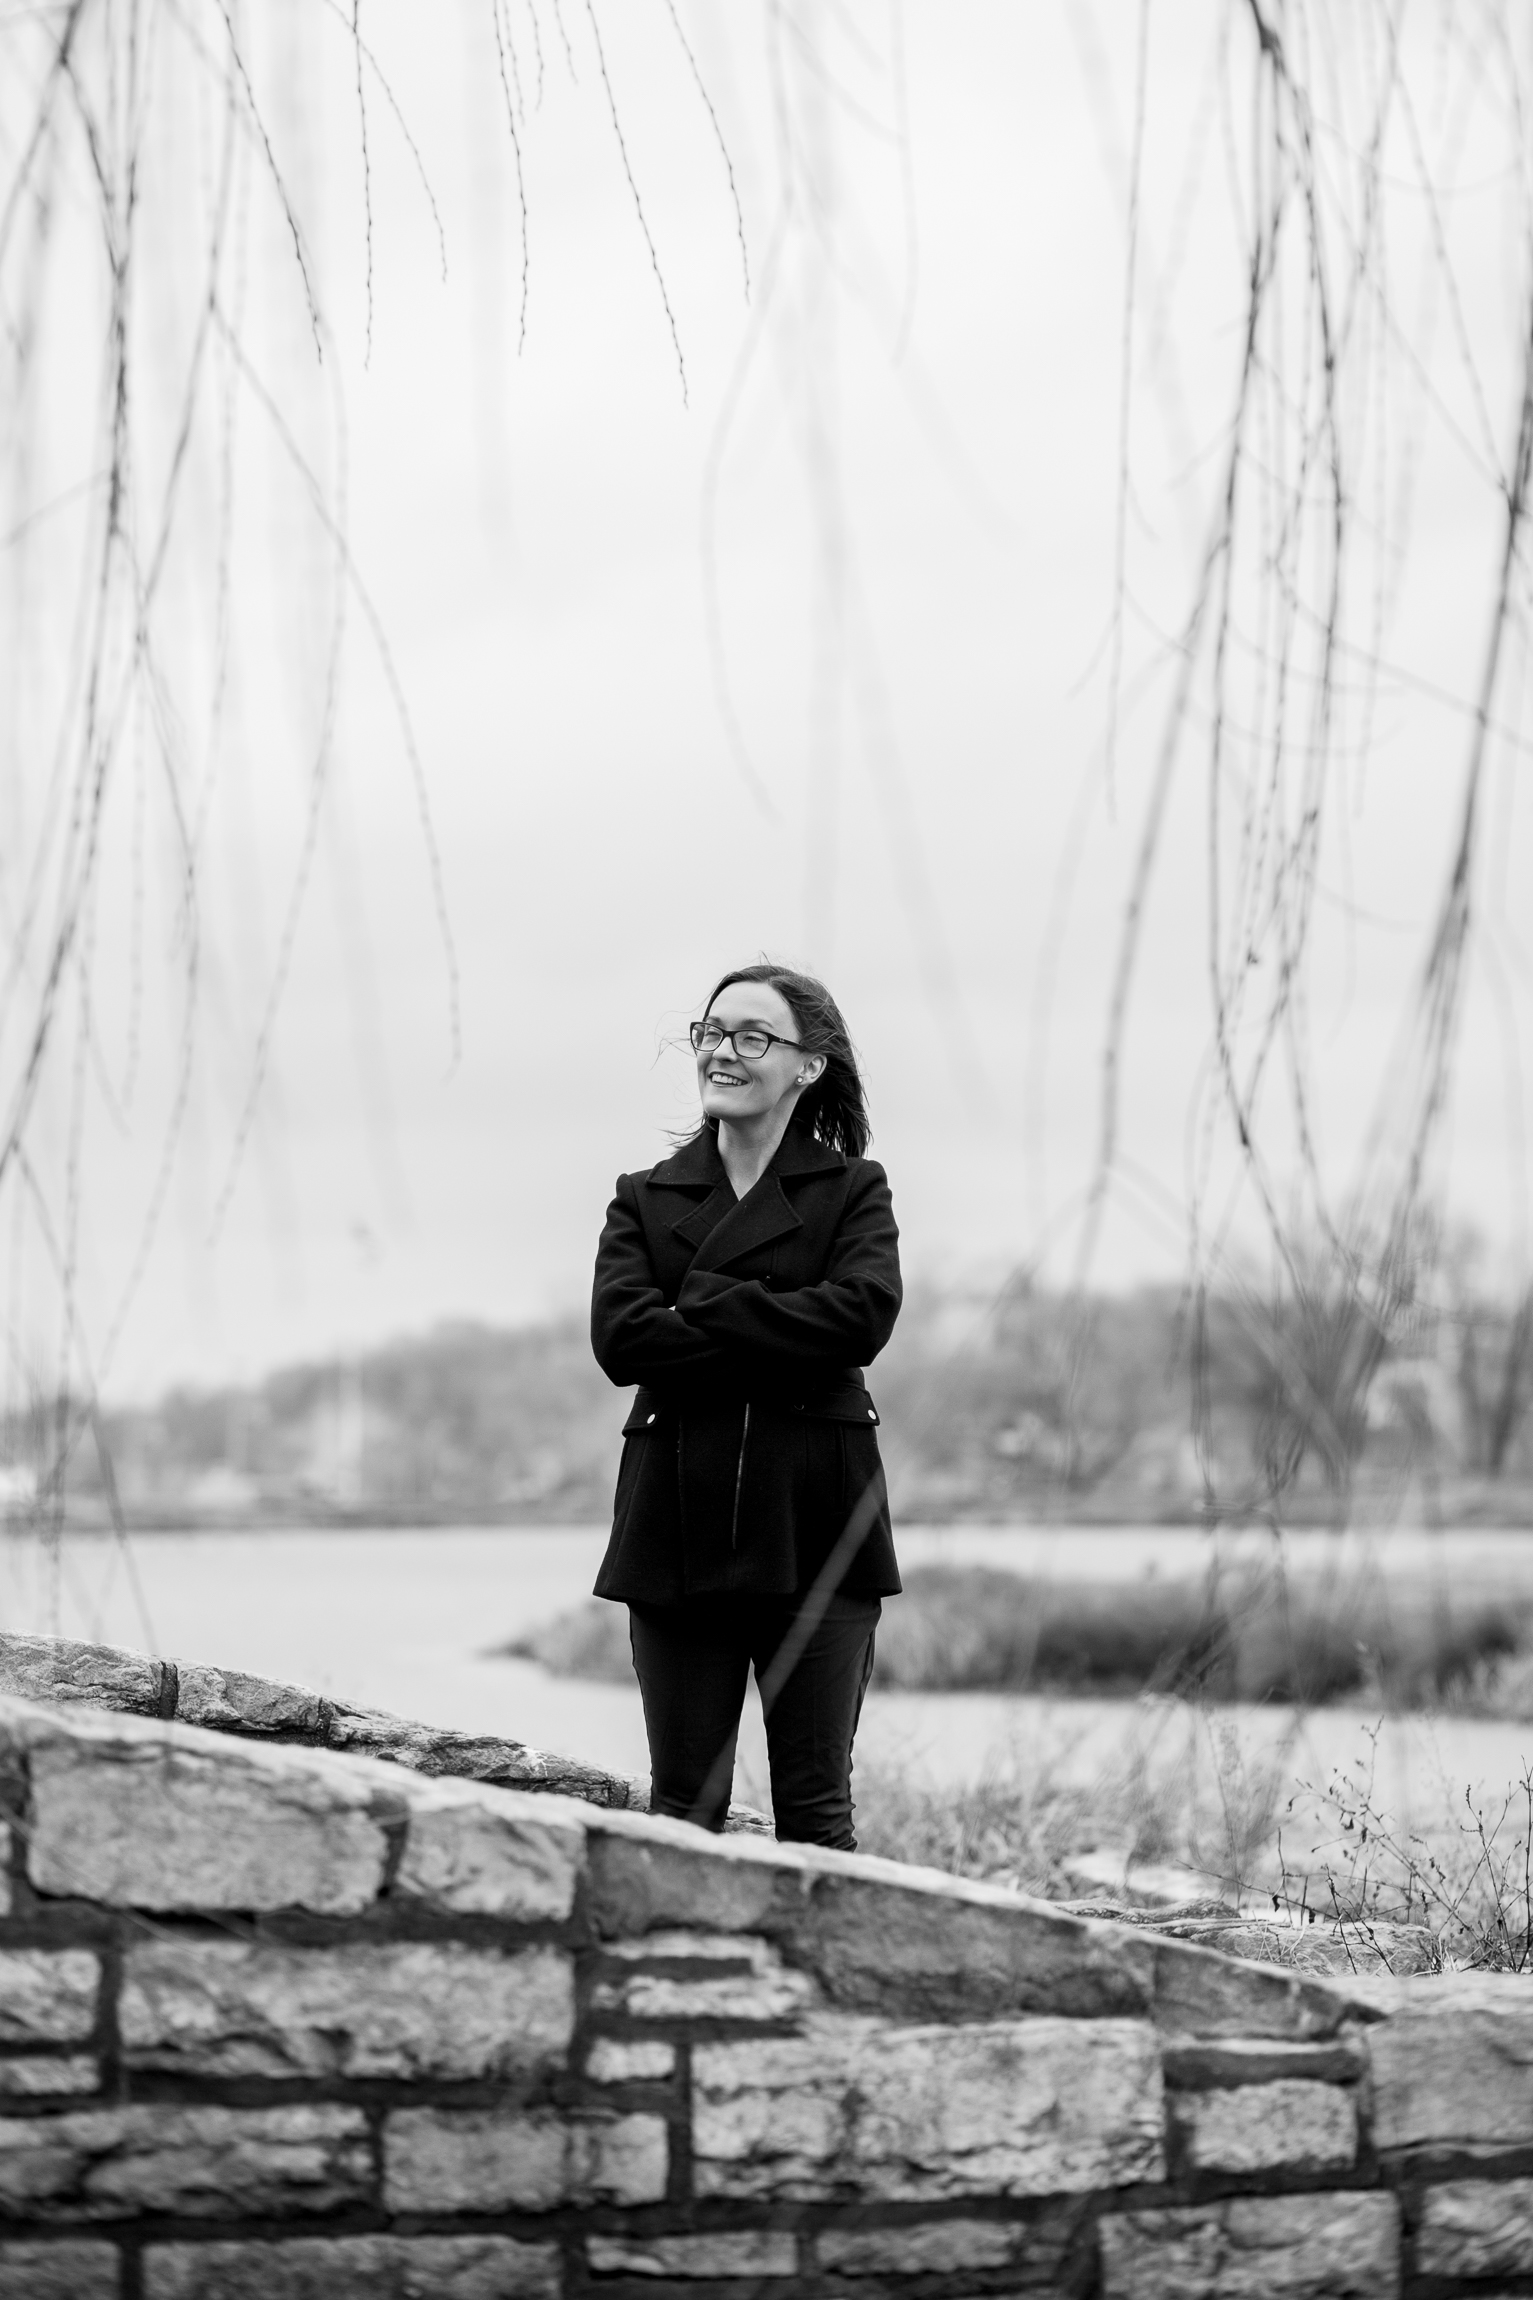 Candid black and white portrait of woman sitting by winter pond, Kansas City lifestyle photographer, Kansas City senior photographer, Kansas City small business headshots, Kansas City lifestyle blogger, candid portrait, winter portrait session, Penn Valley Park